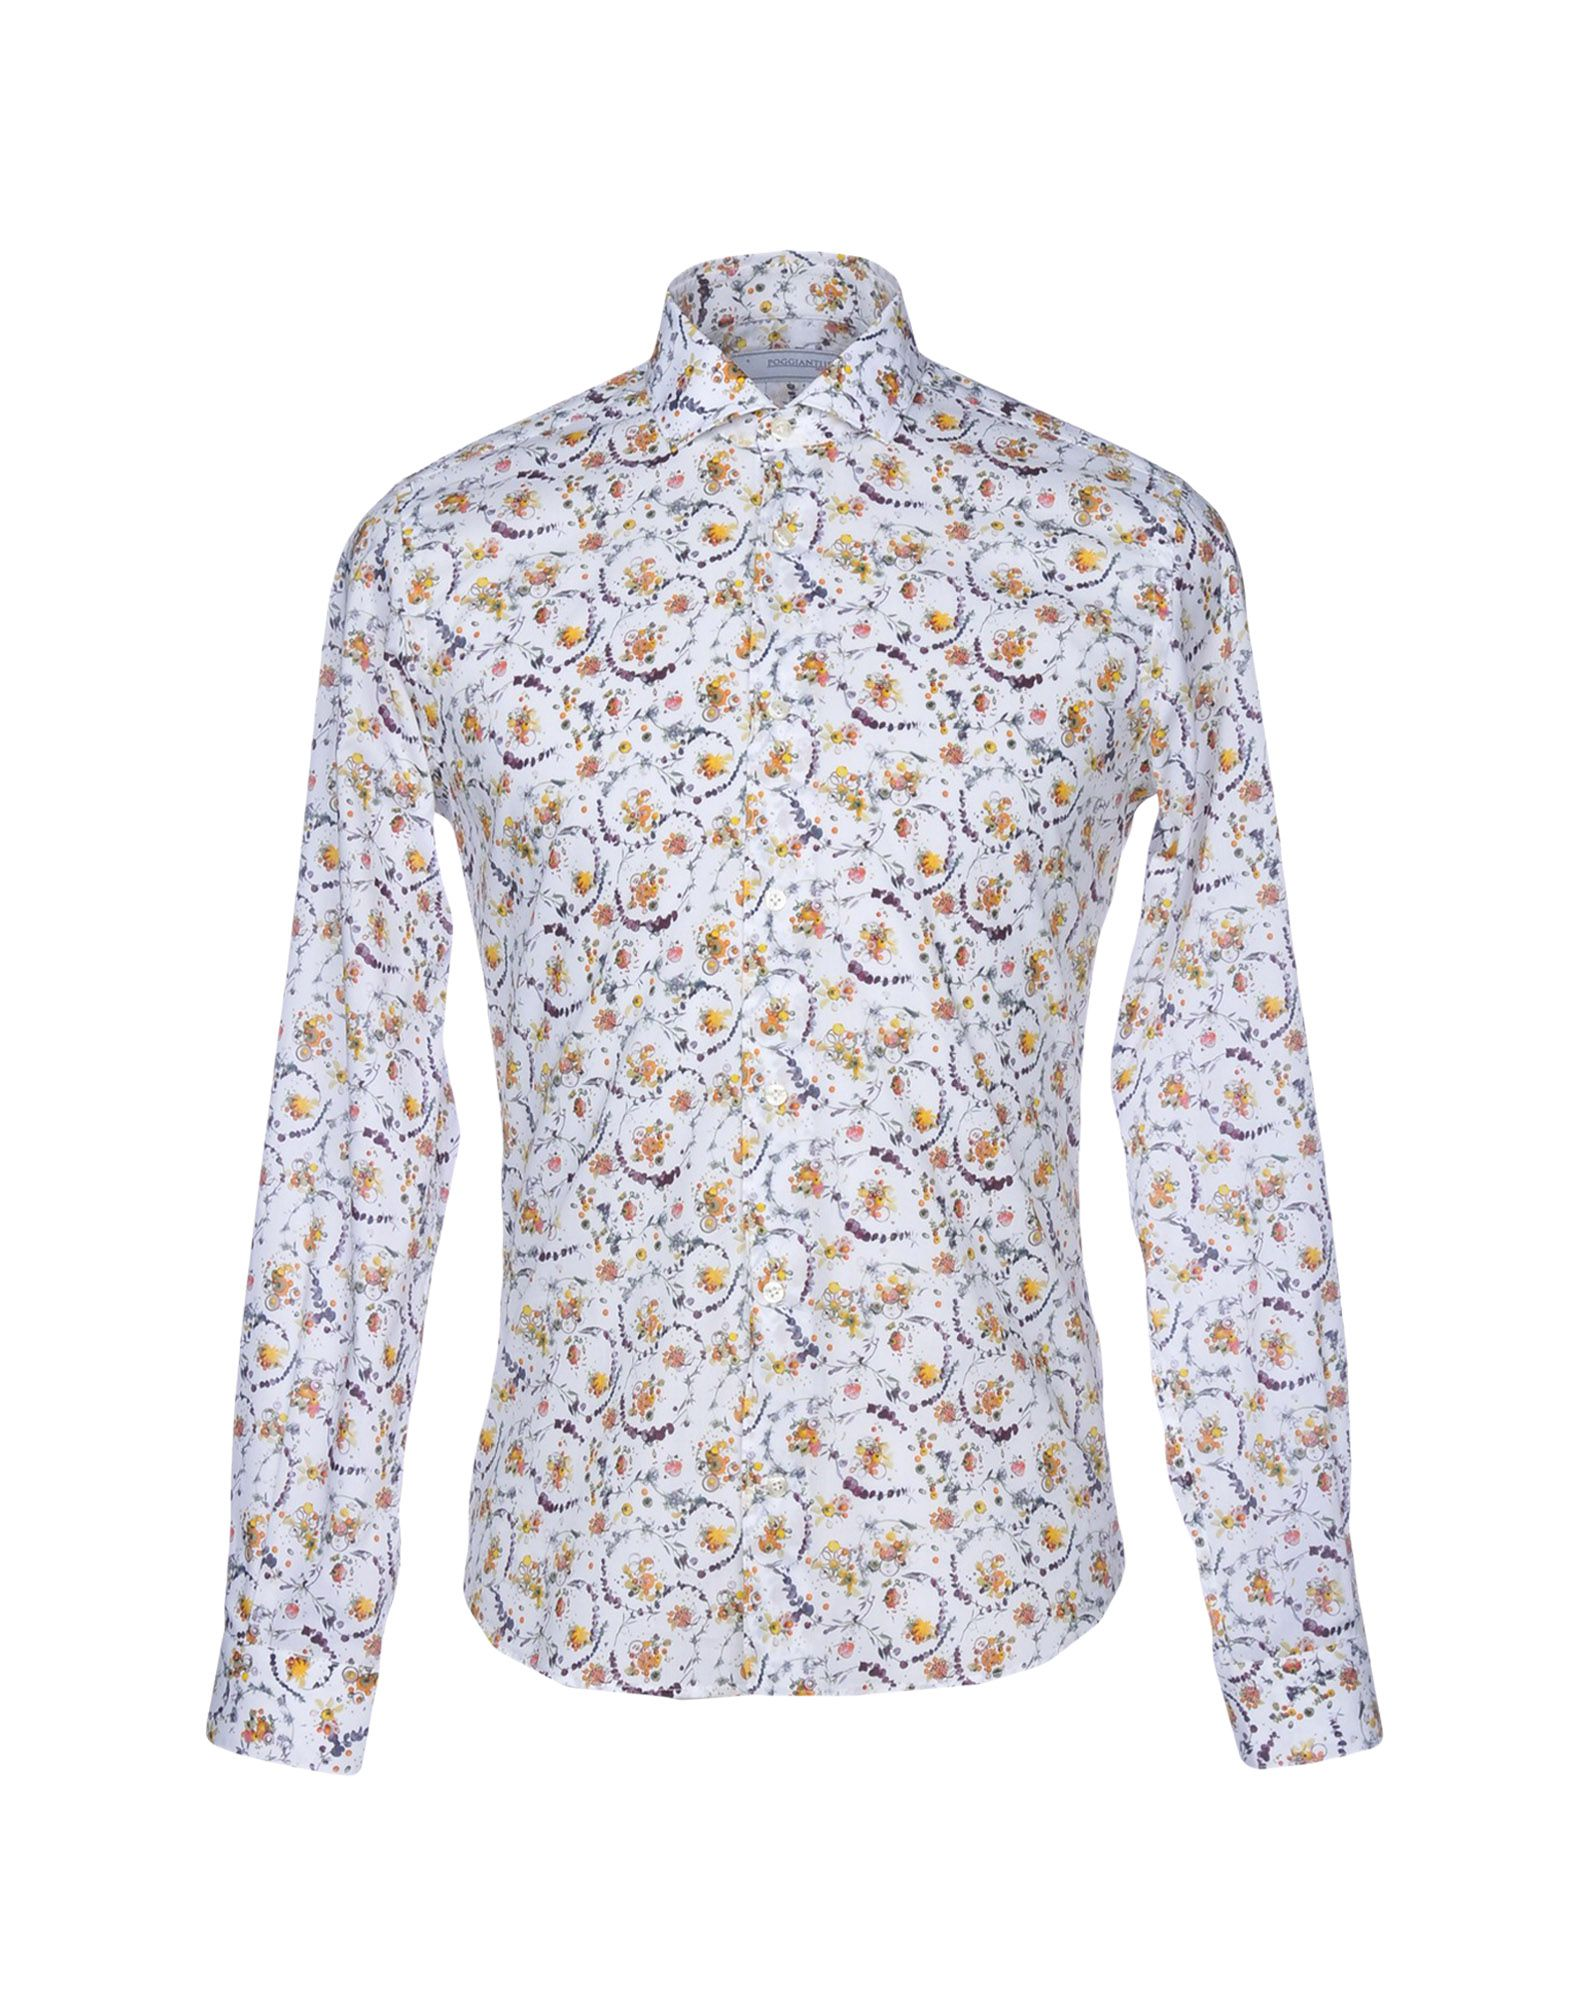 POGGIANTI Patterned Shirt in White